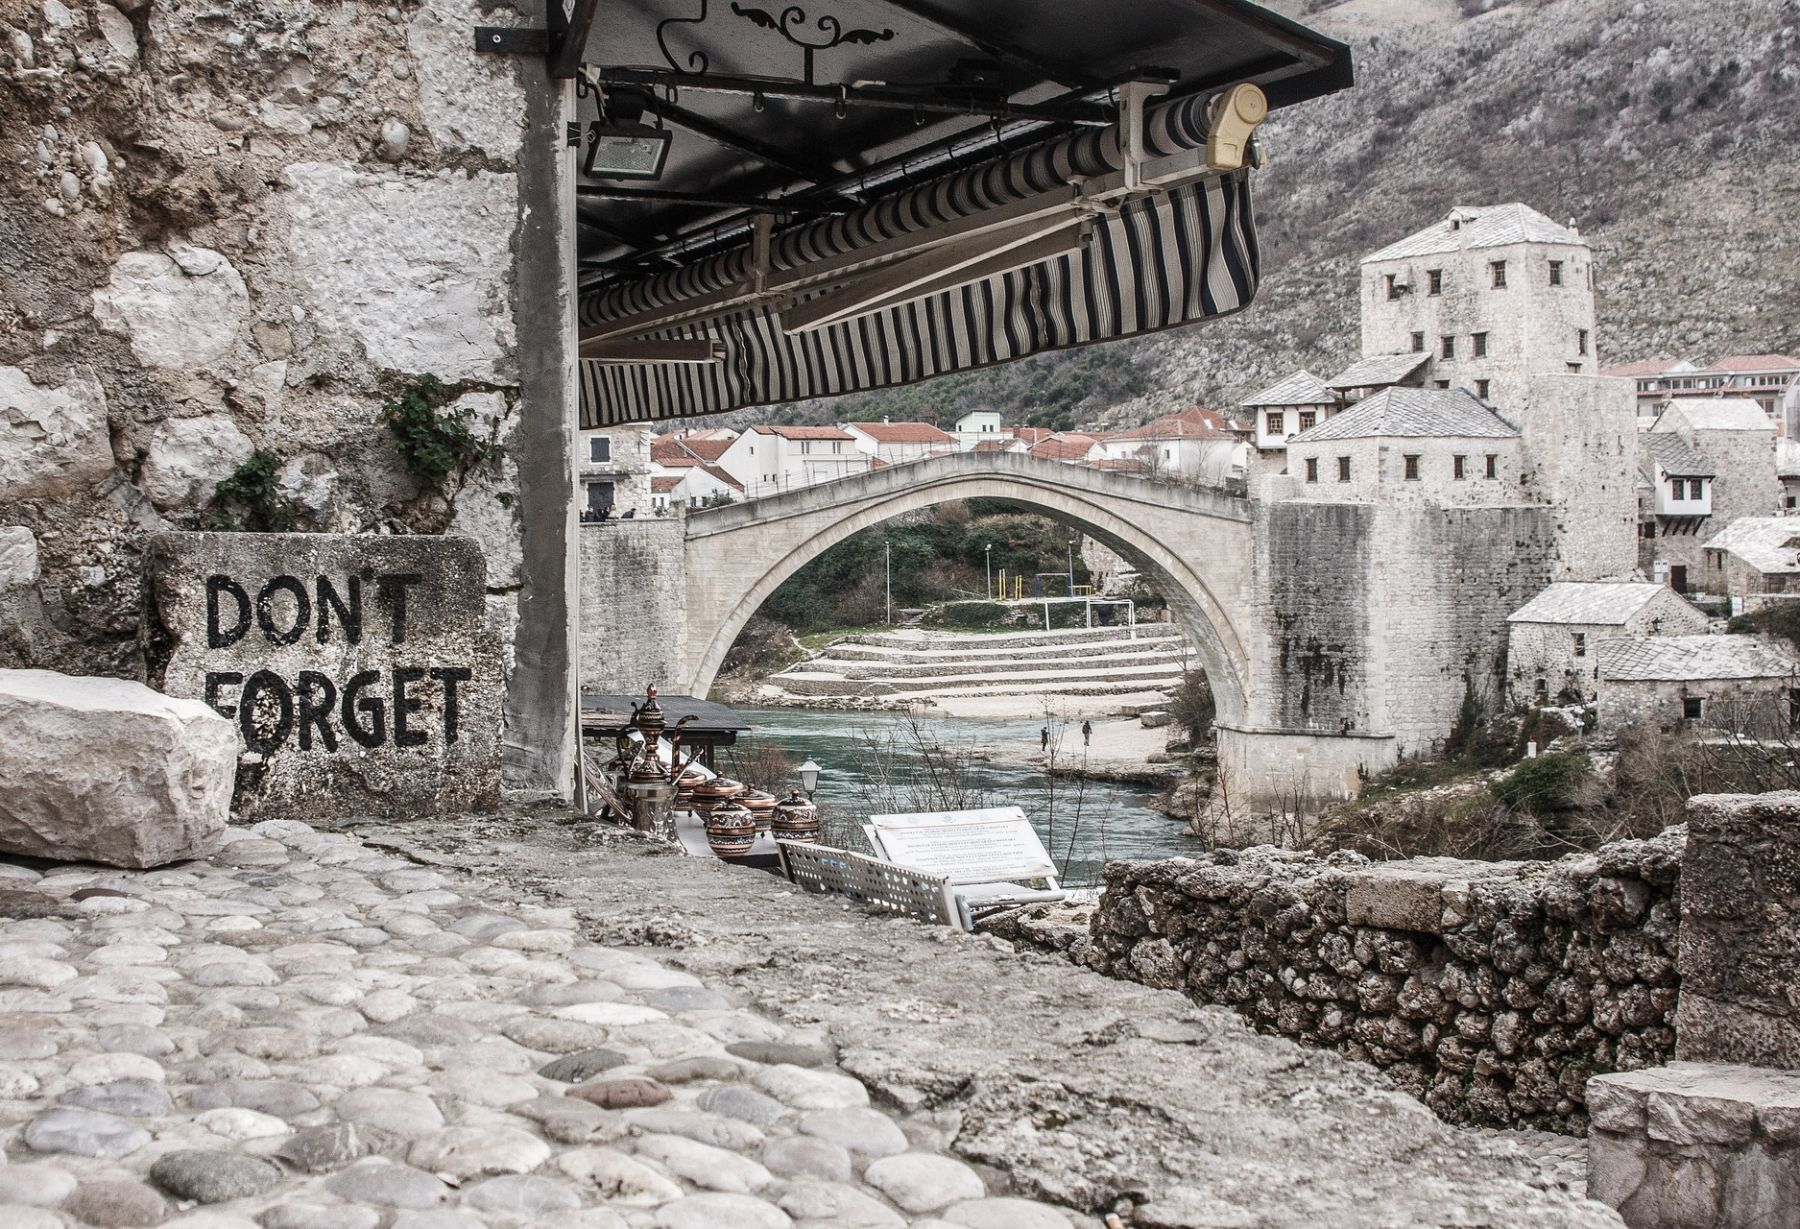 Grassroots Activism in the Divided City: Re-Appropriating Space with Art Practice in Mostar (BiH)